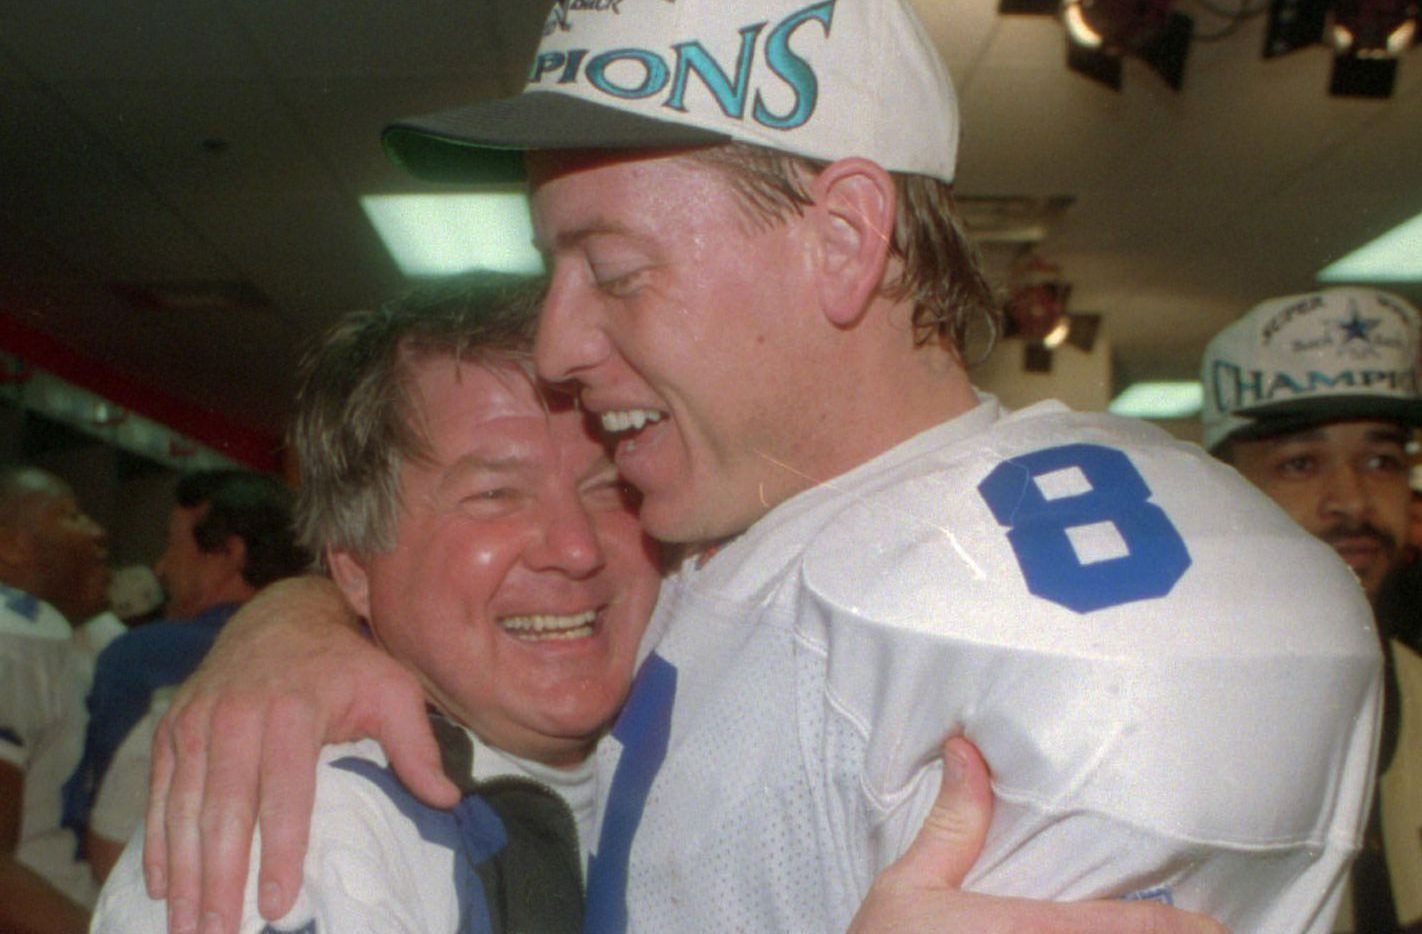 Dallas Cowboys head coach Jimmy Johnson hugs quarterback Troy Aikman in their locker room after beating the Buffalo Bills 30-13 in Super Bowl XXVIII at Atlanta's Georgia Dome, Jan. 30, 1994.